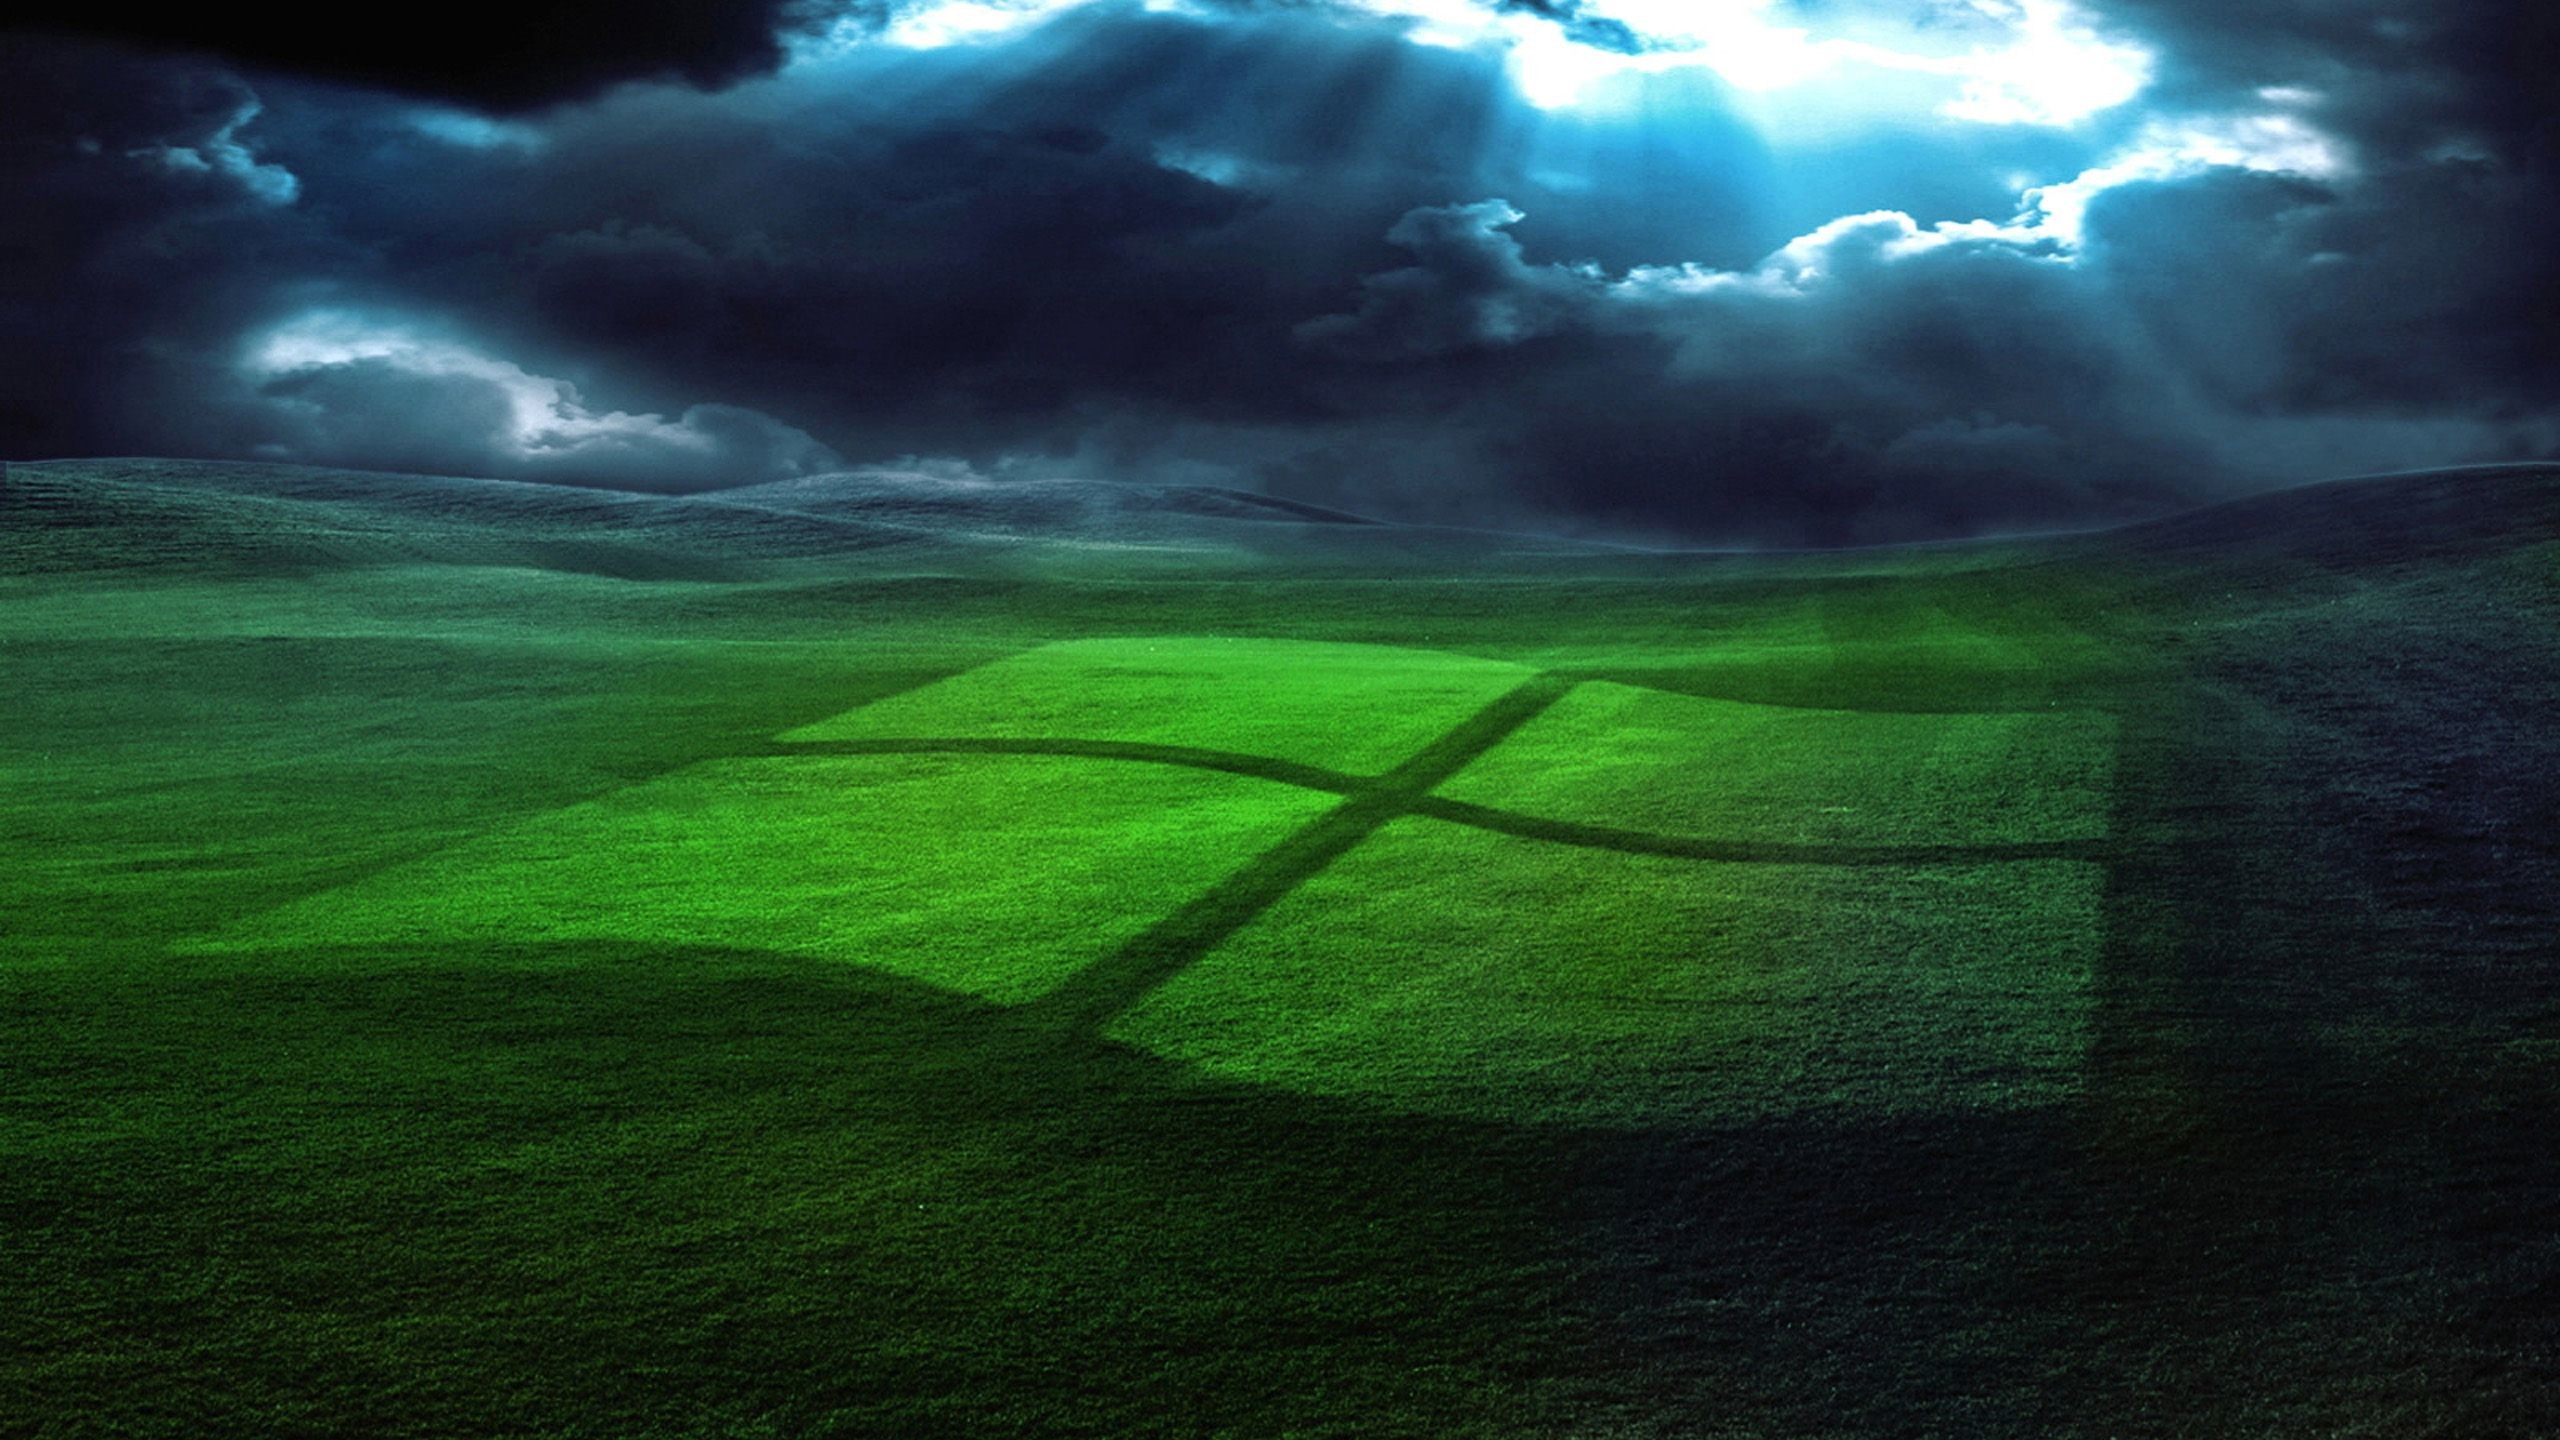 2560x1440 Animated Wallpaper Windows 8 | PixelsTalk Net